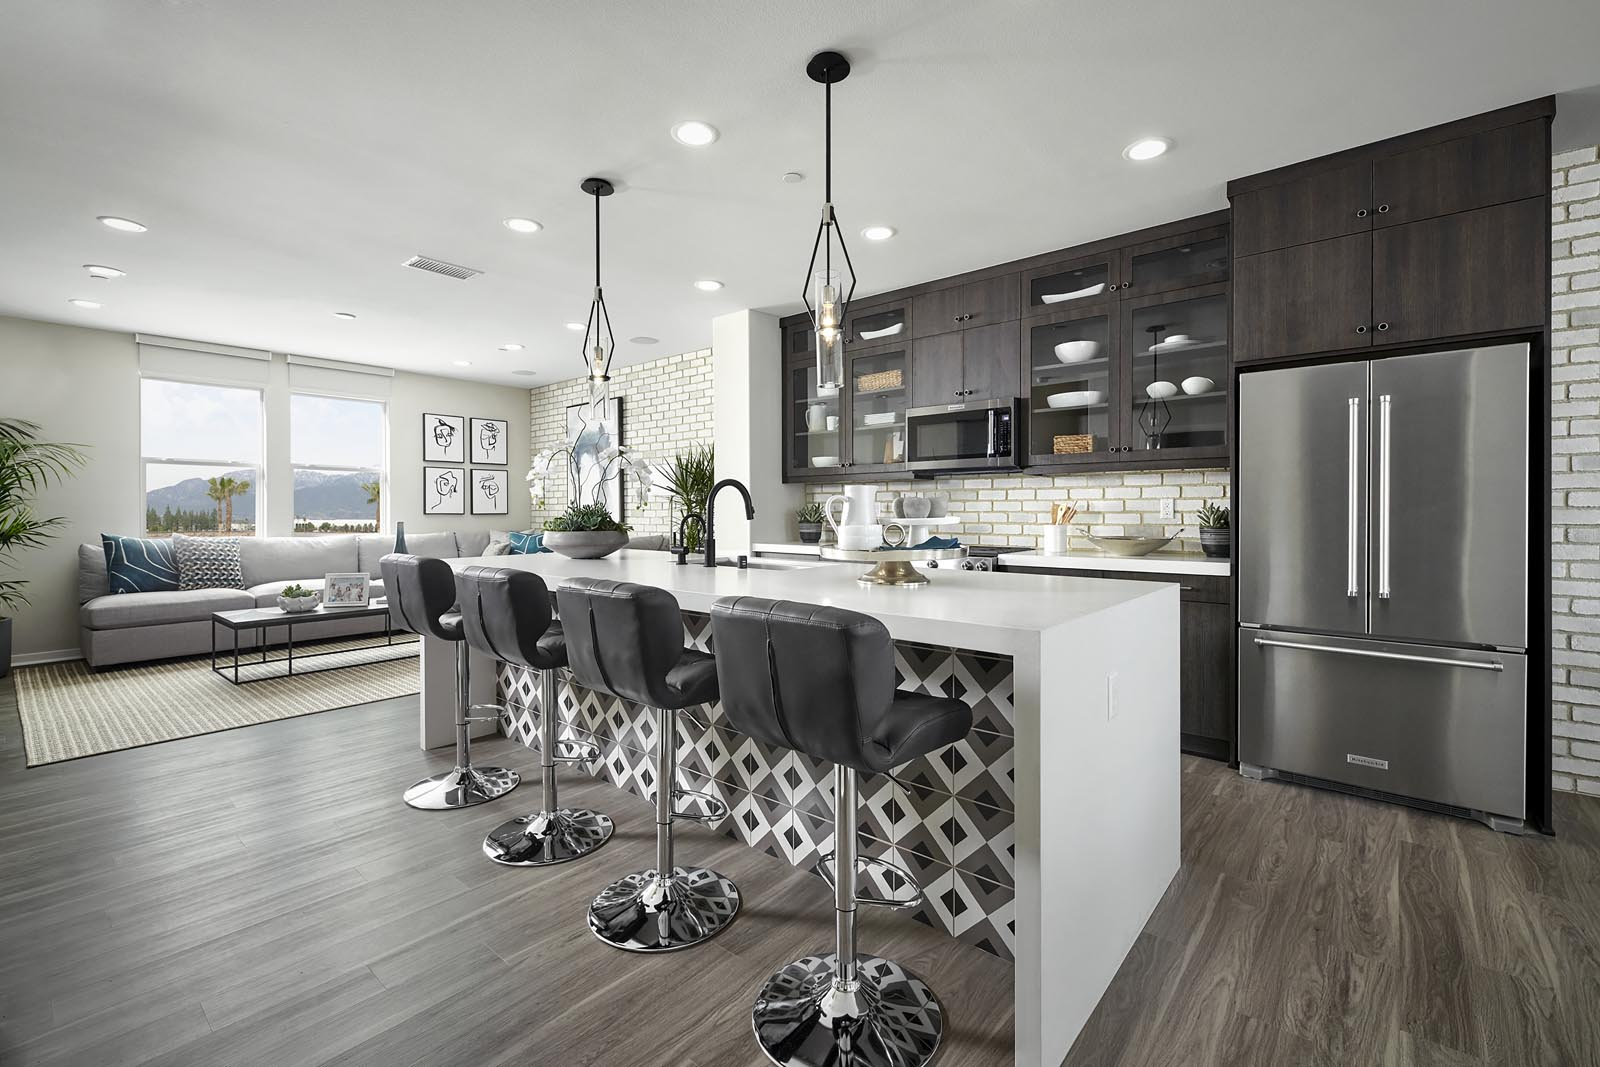 Kitchen   Residence 2   Tempo   New Homes in Rancho Cucamonga, CA   Tri Pointe Homes